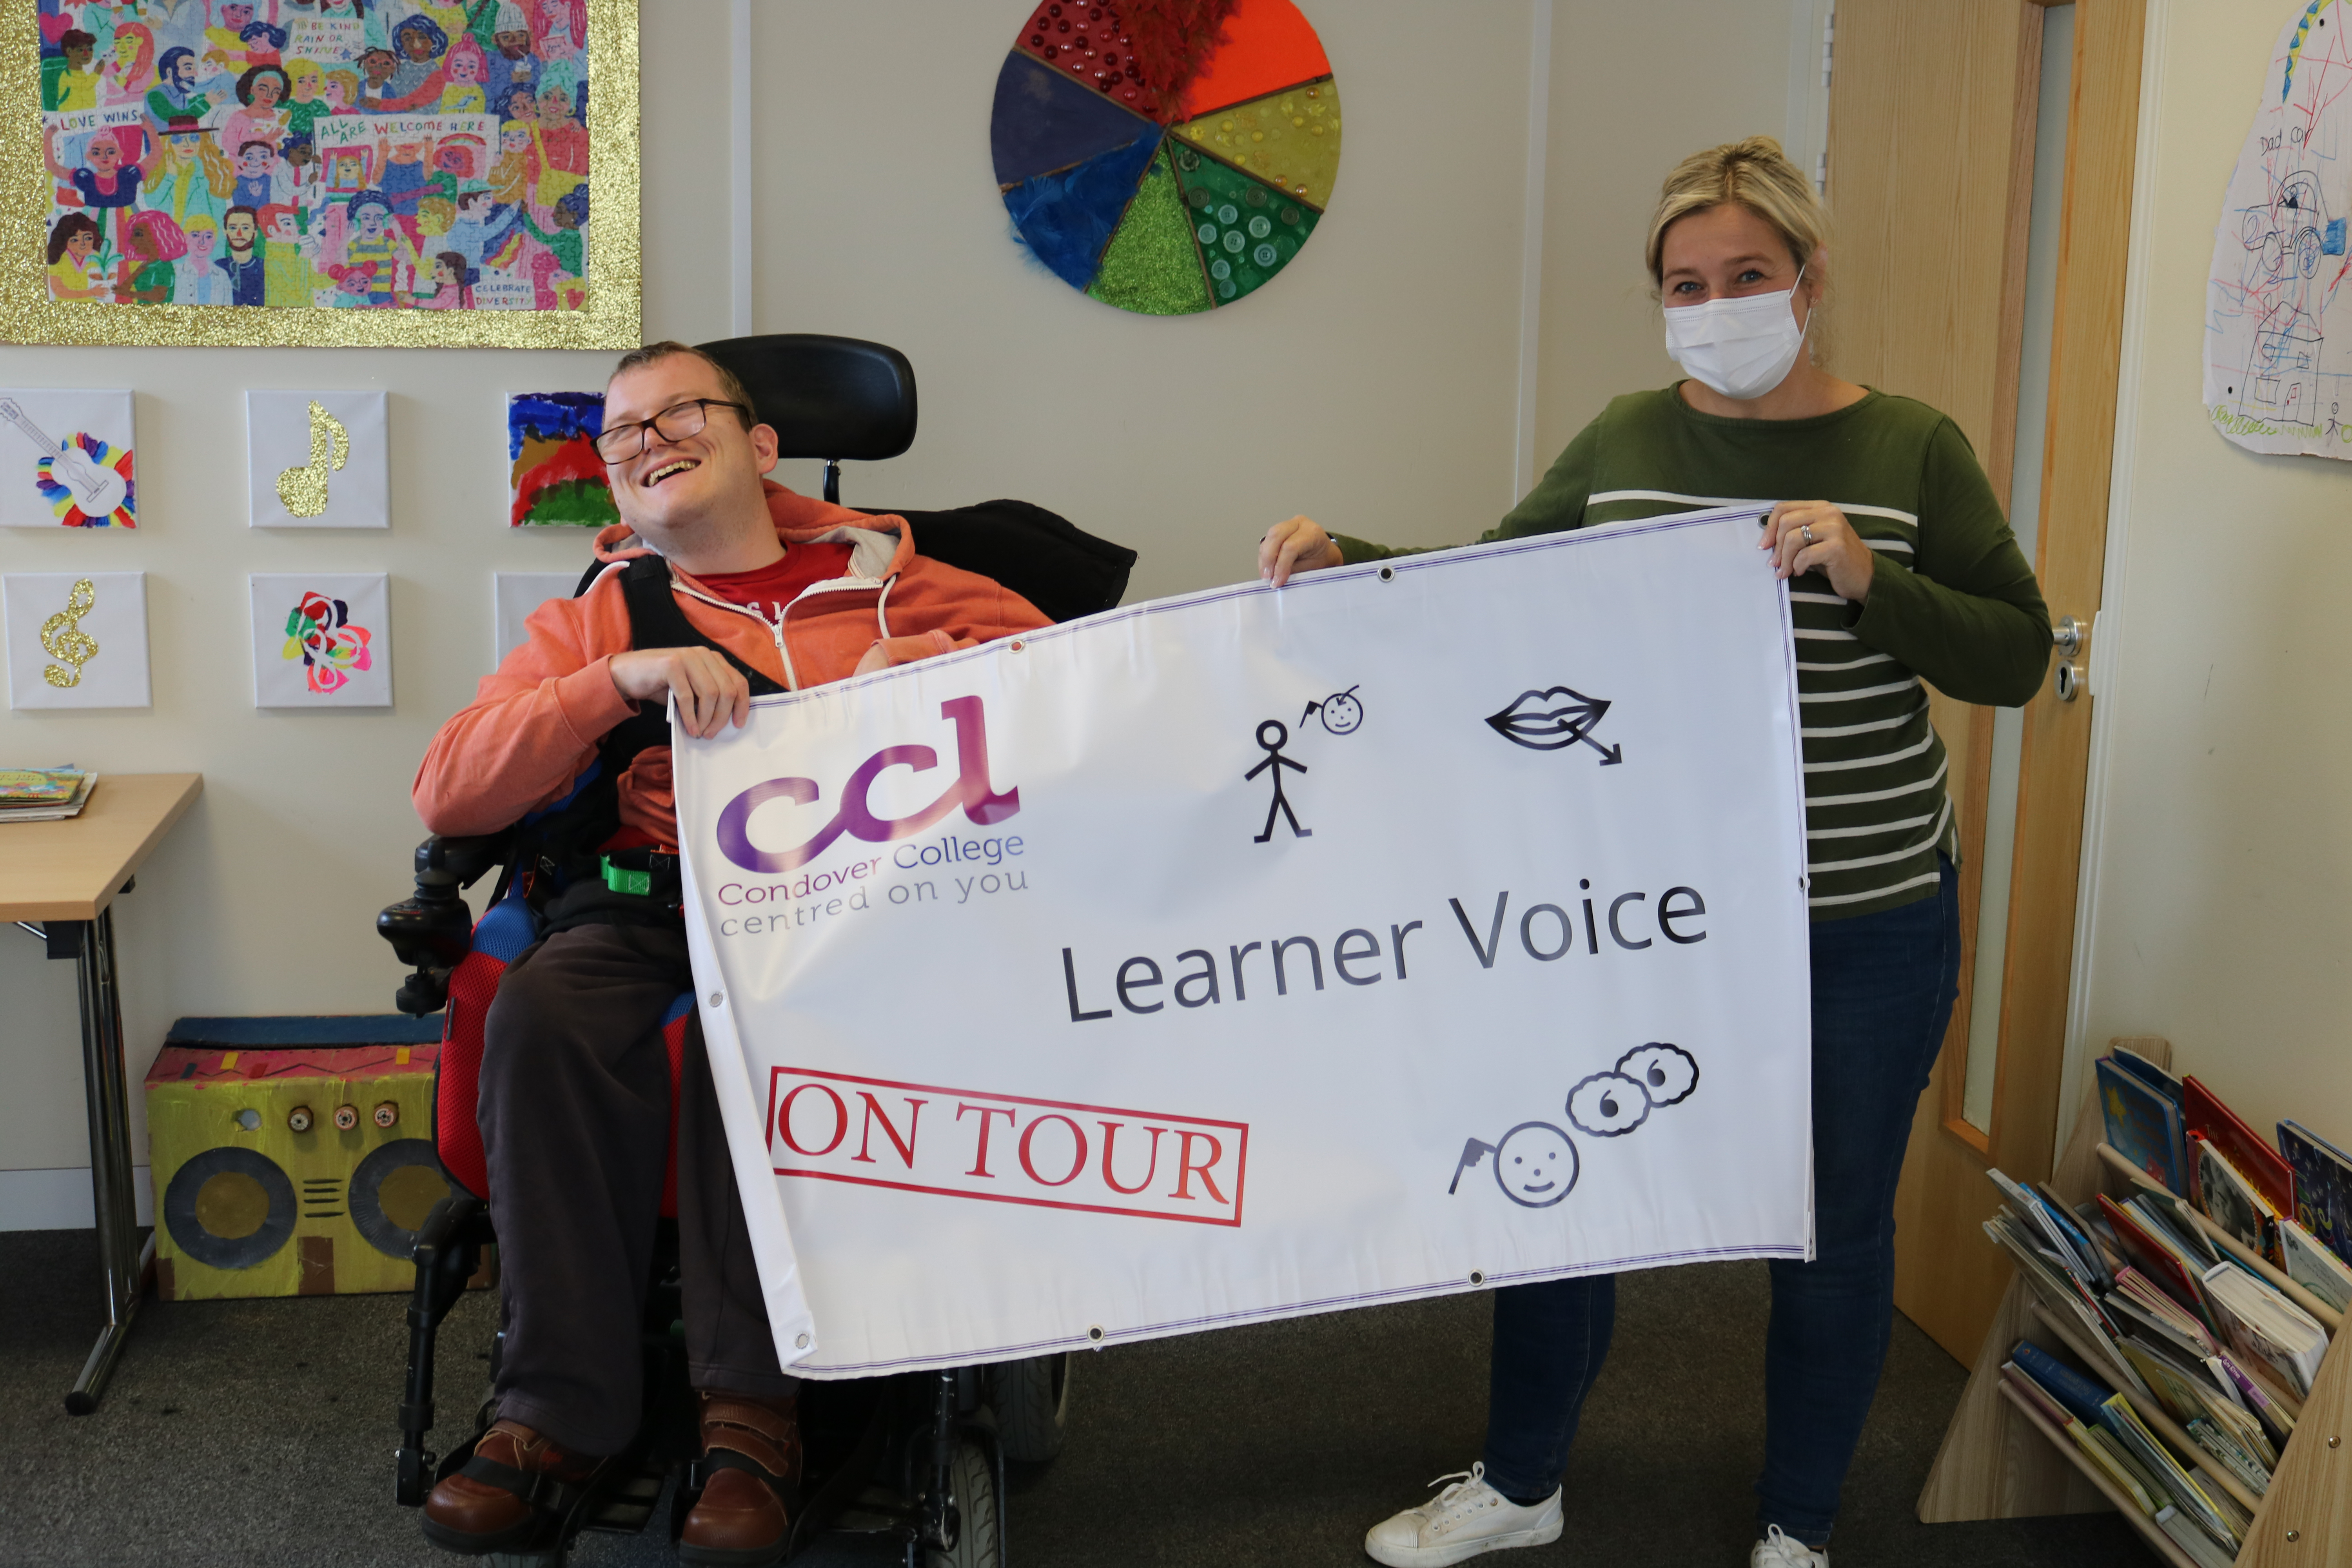 Learner Voice is On Tour!